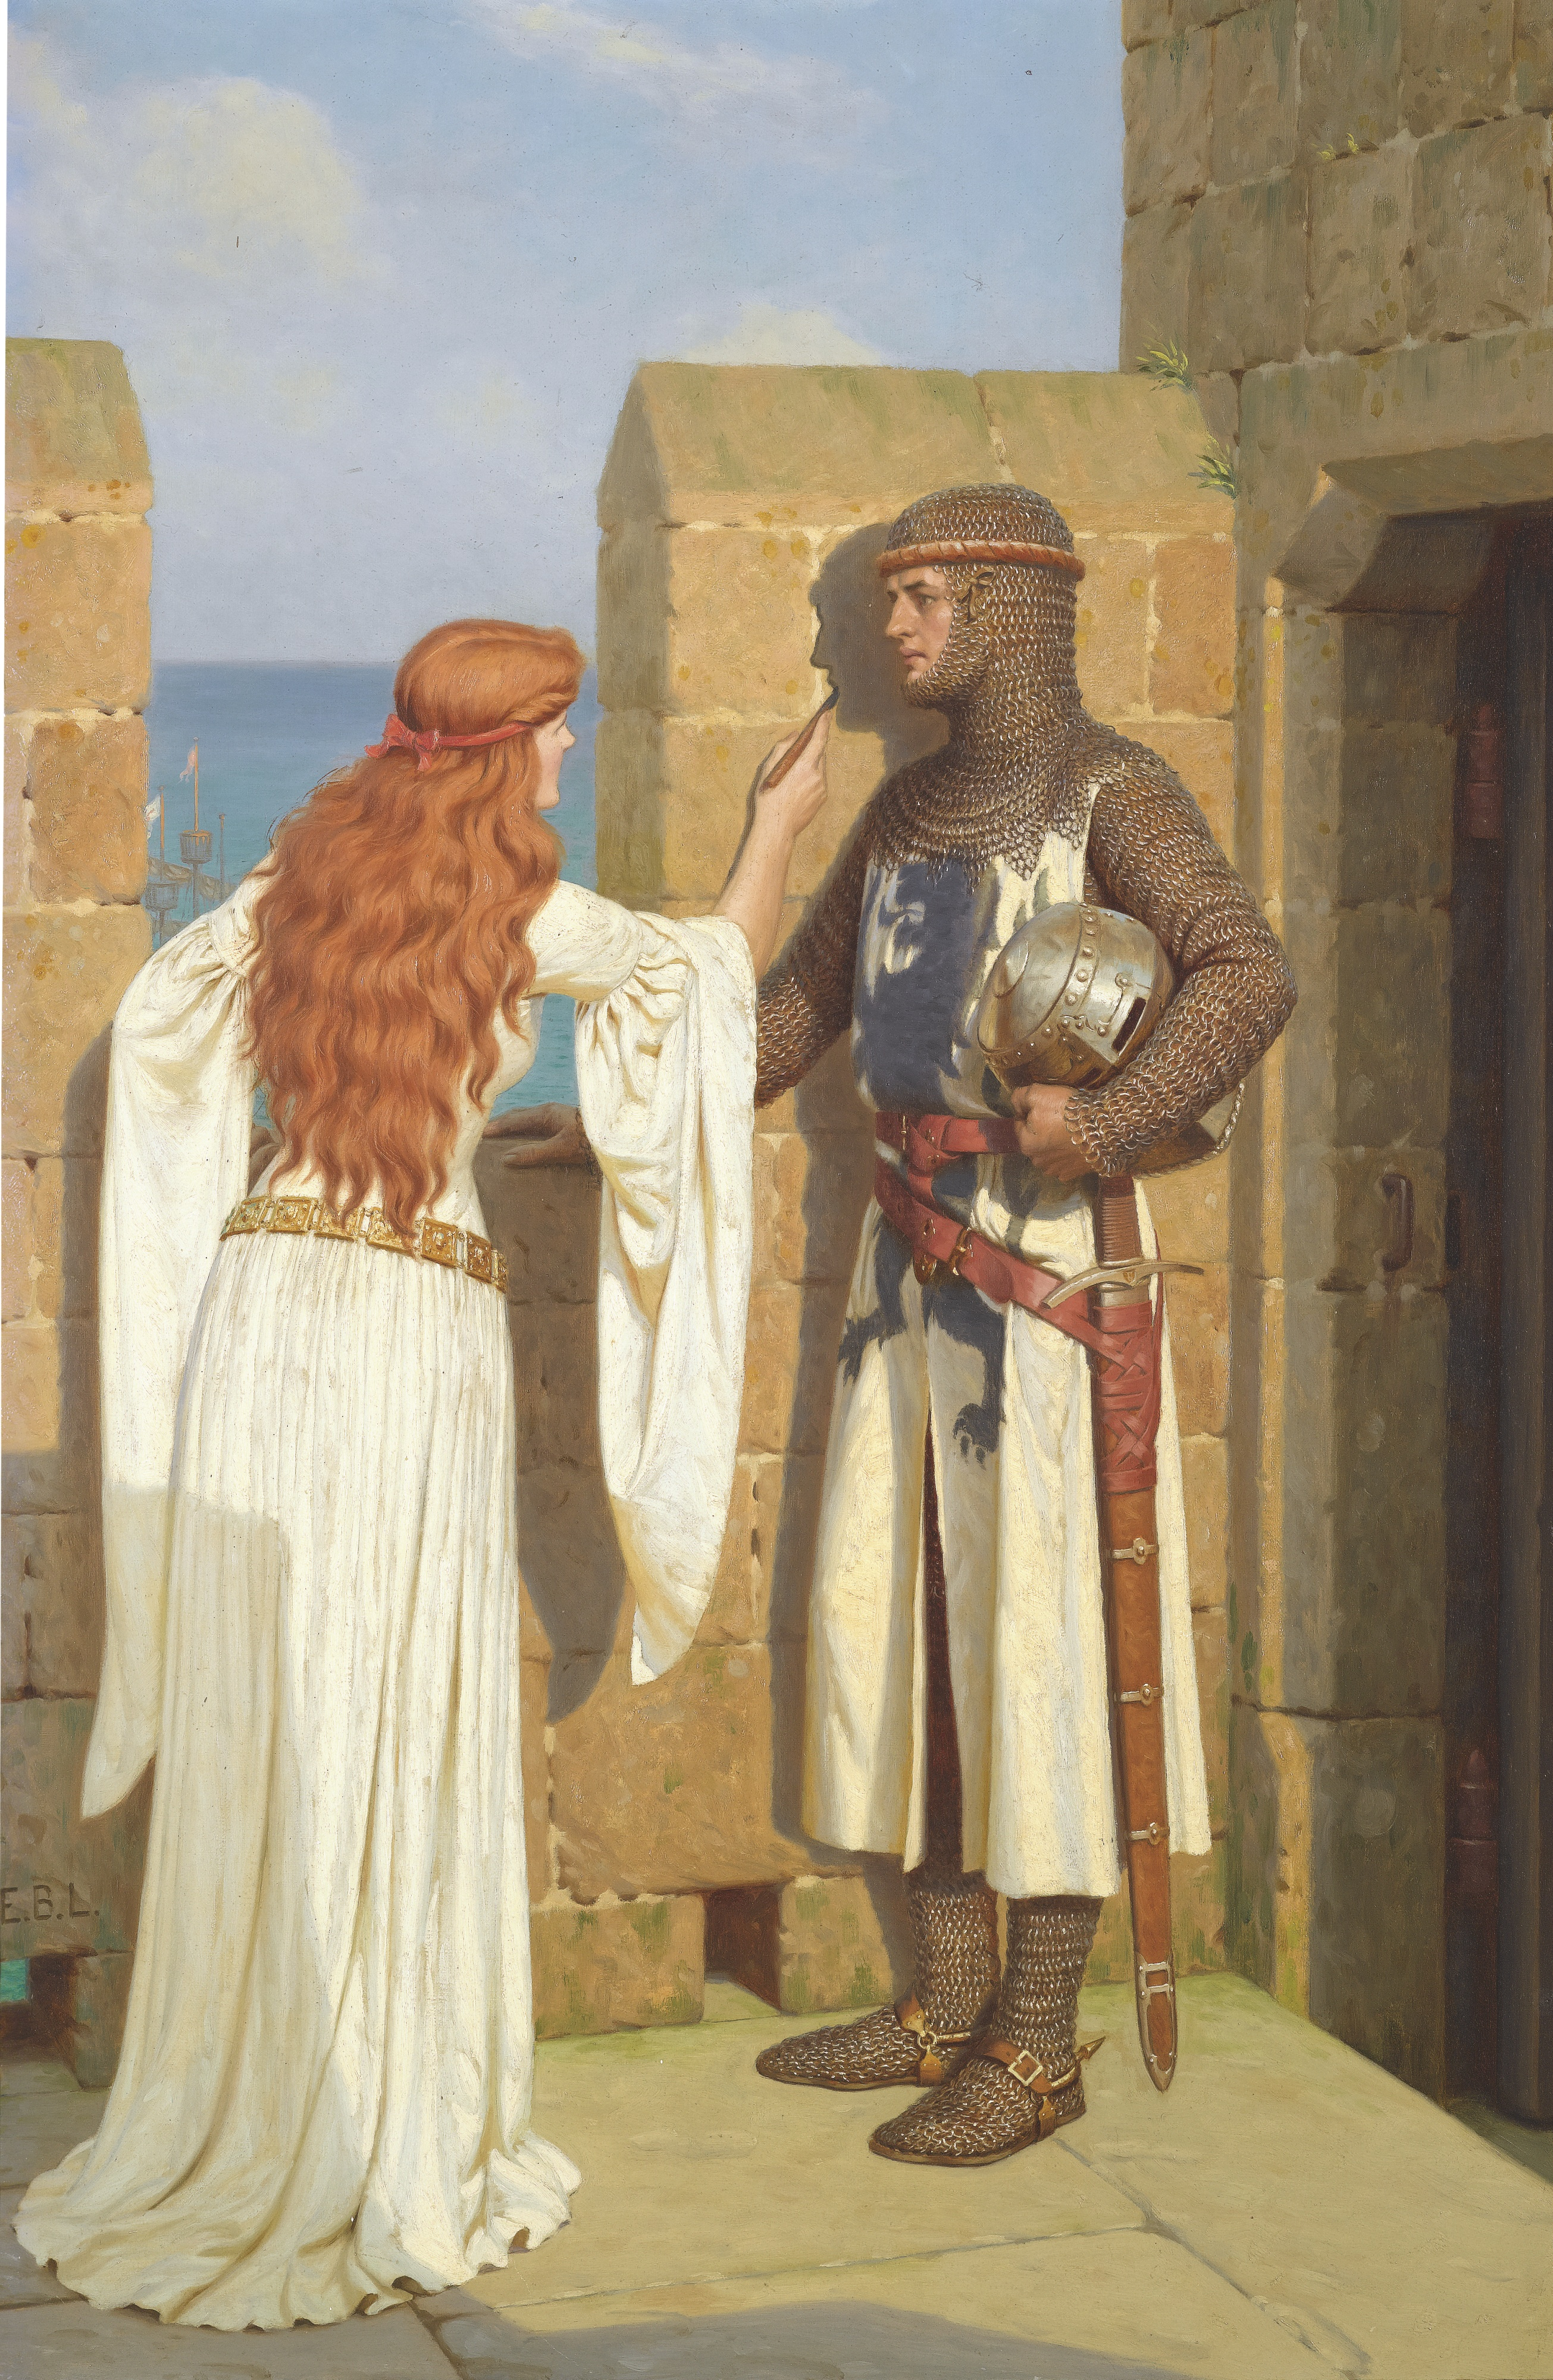 'The Shadow' by Edmund Leighton [Public domain]